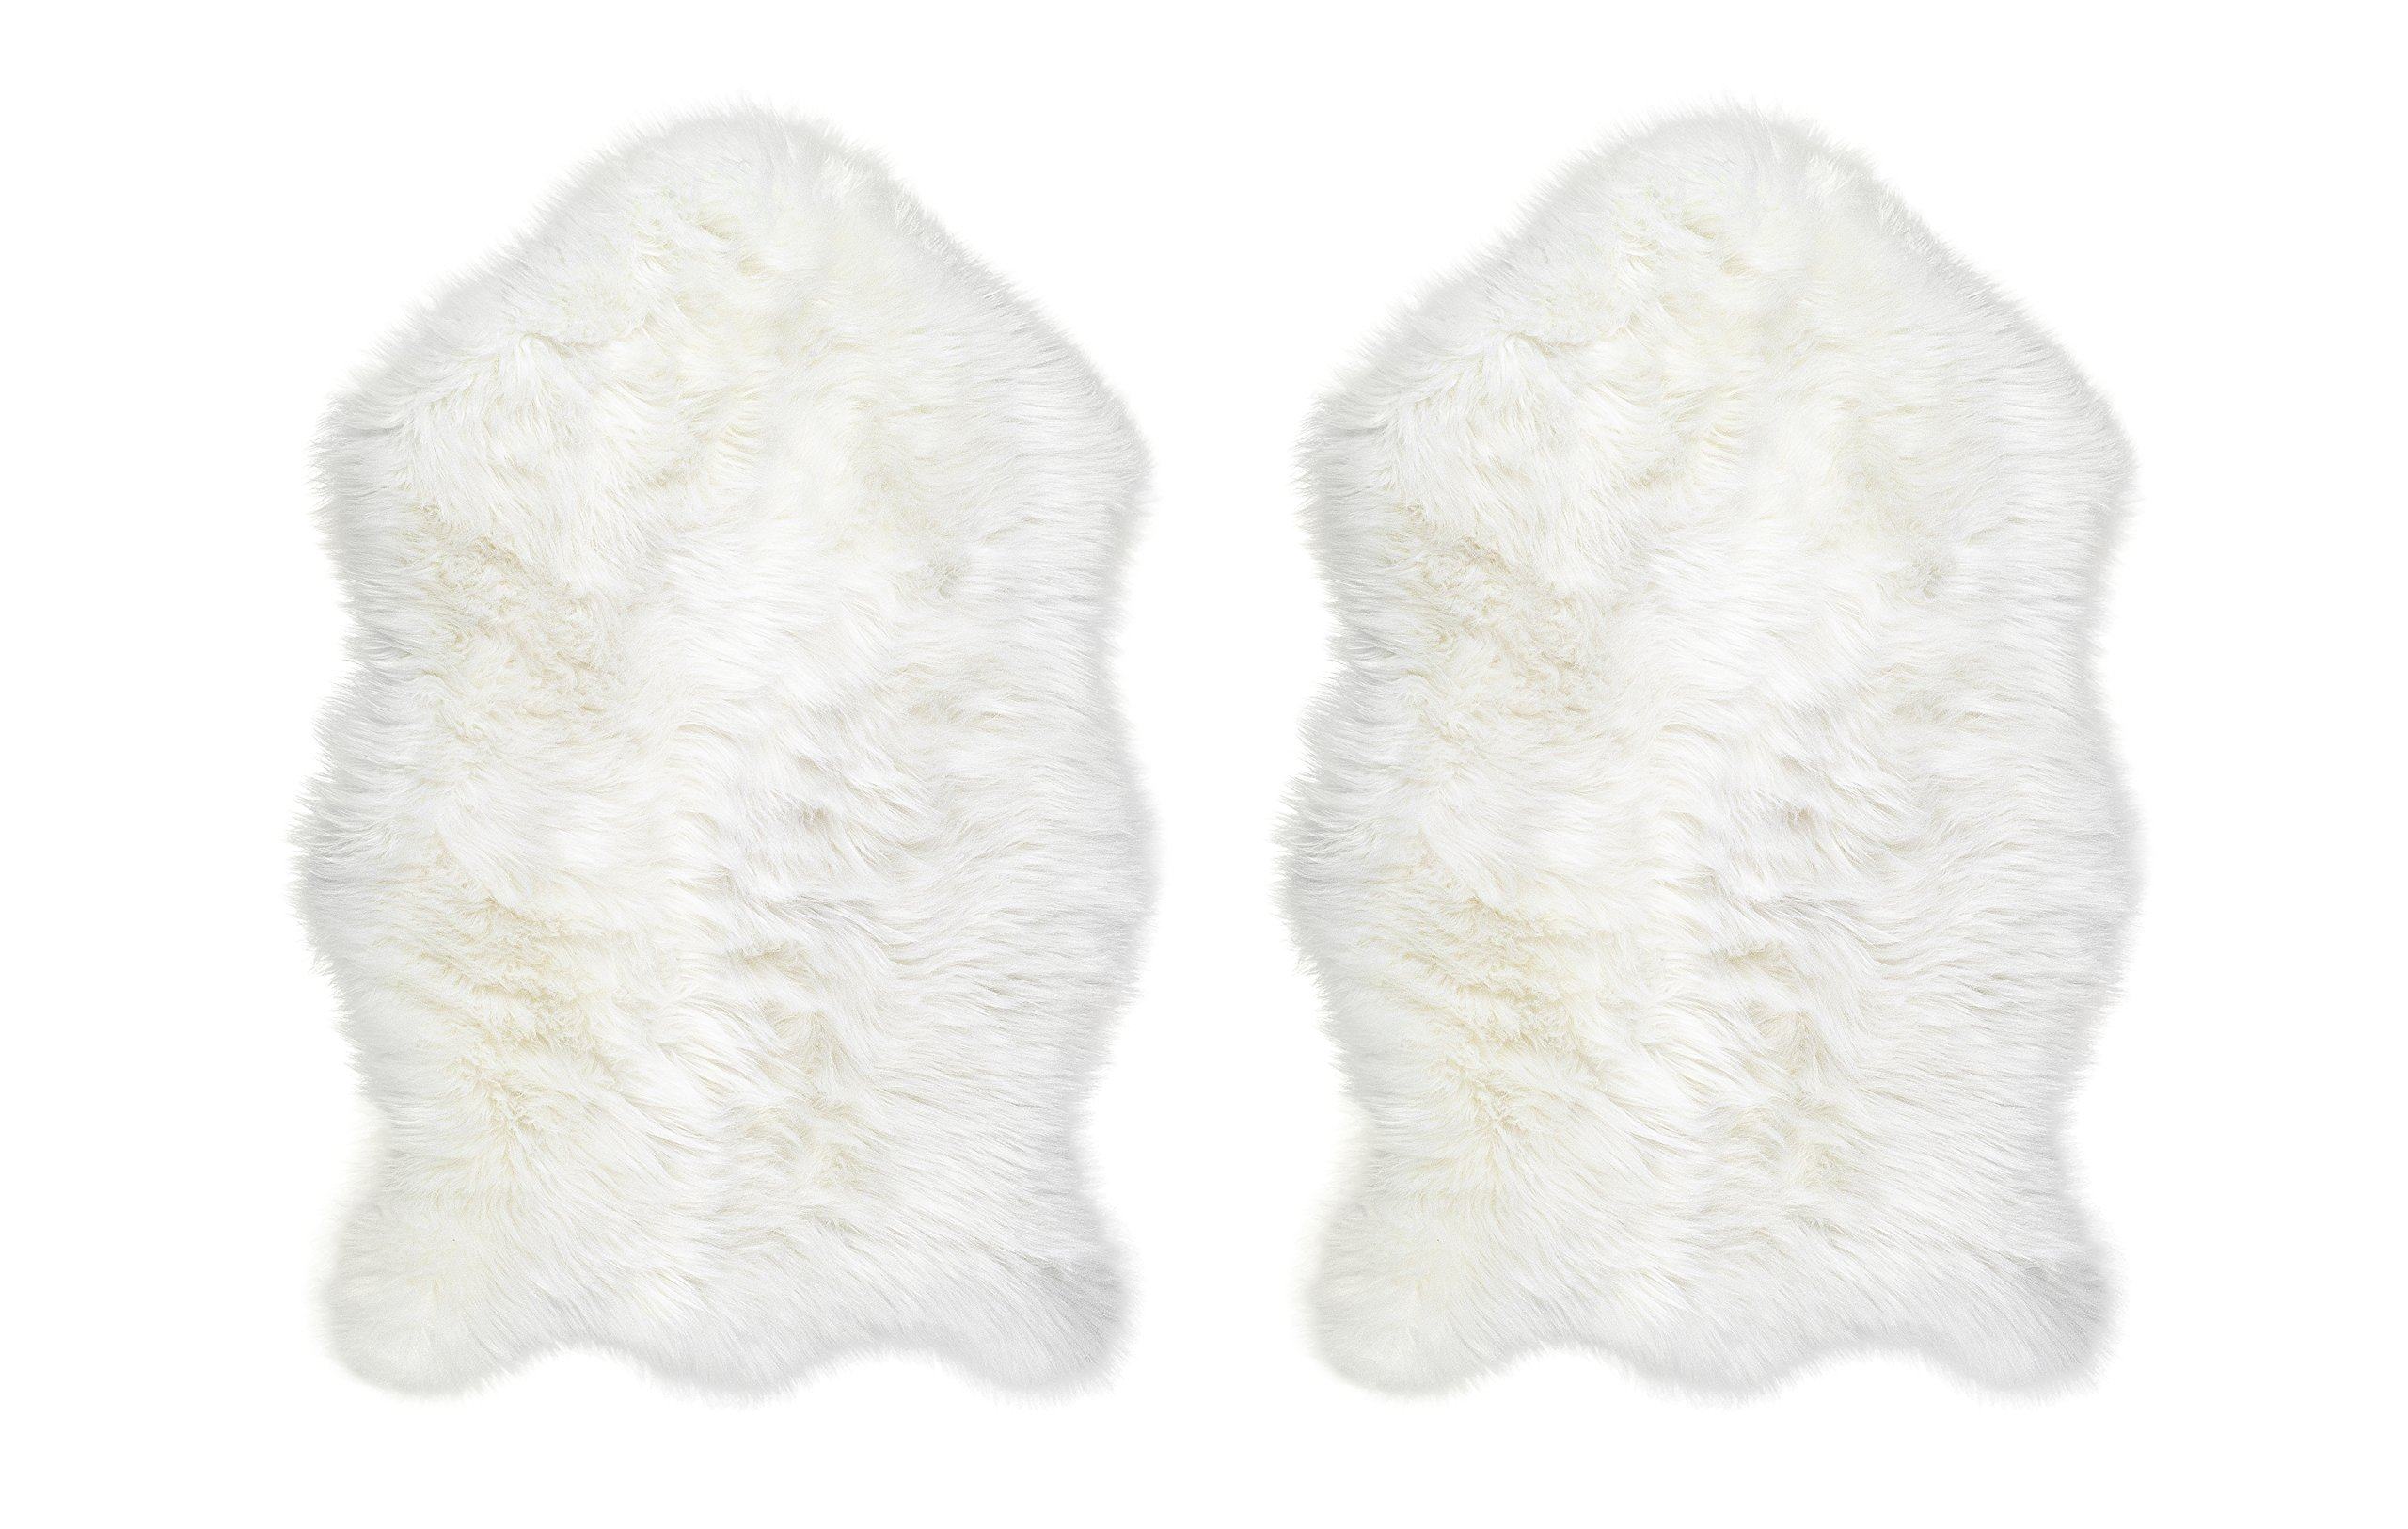 Chesserfeld Luxury Faux Fur Sheepskin Rug, Ivory, 2ft x 3ft (Set of 2) with Thick Pile | Makes a Soft, Stylish Home Décor Accent for a Kid's Room, Bedroom, Nursery, Living Room or Bath